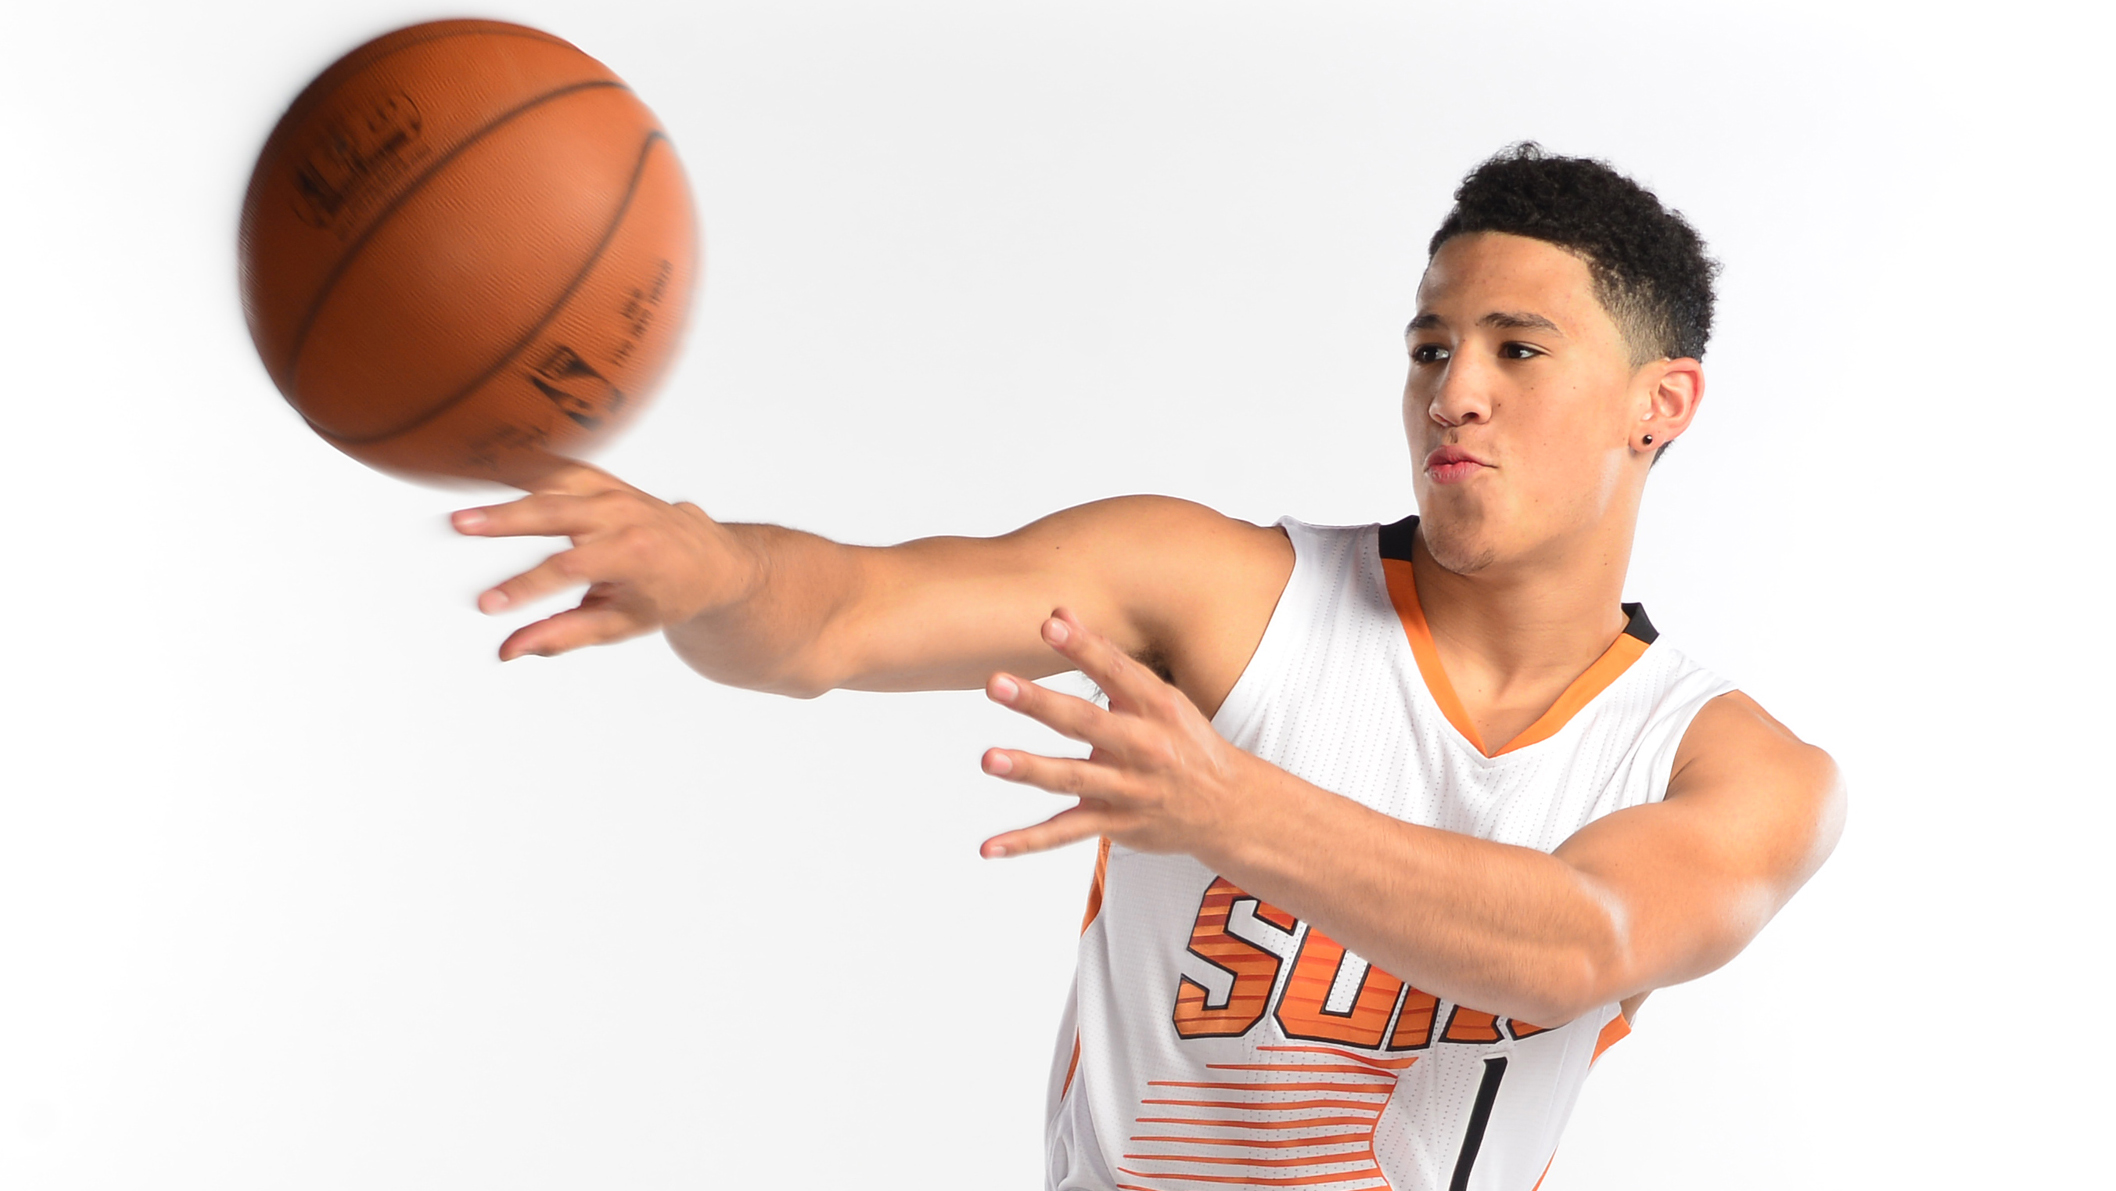 Phoenix Suns 2015 first road draft pick Devin Booker speaks with the media